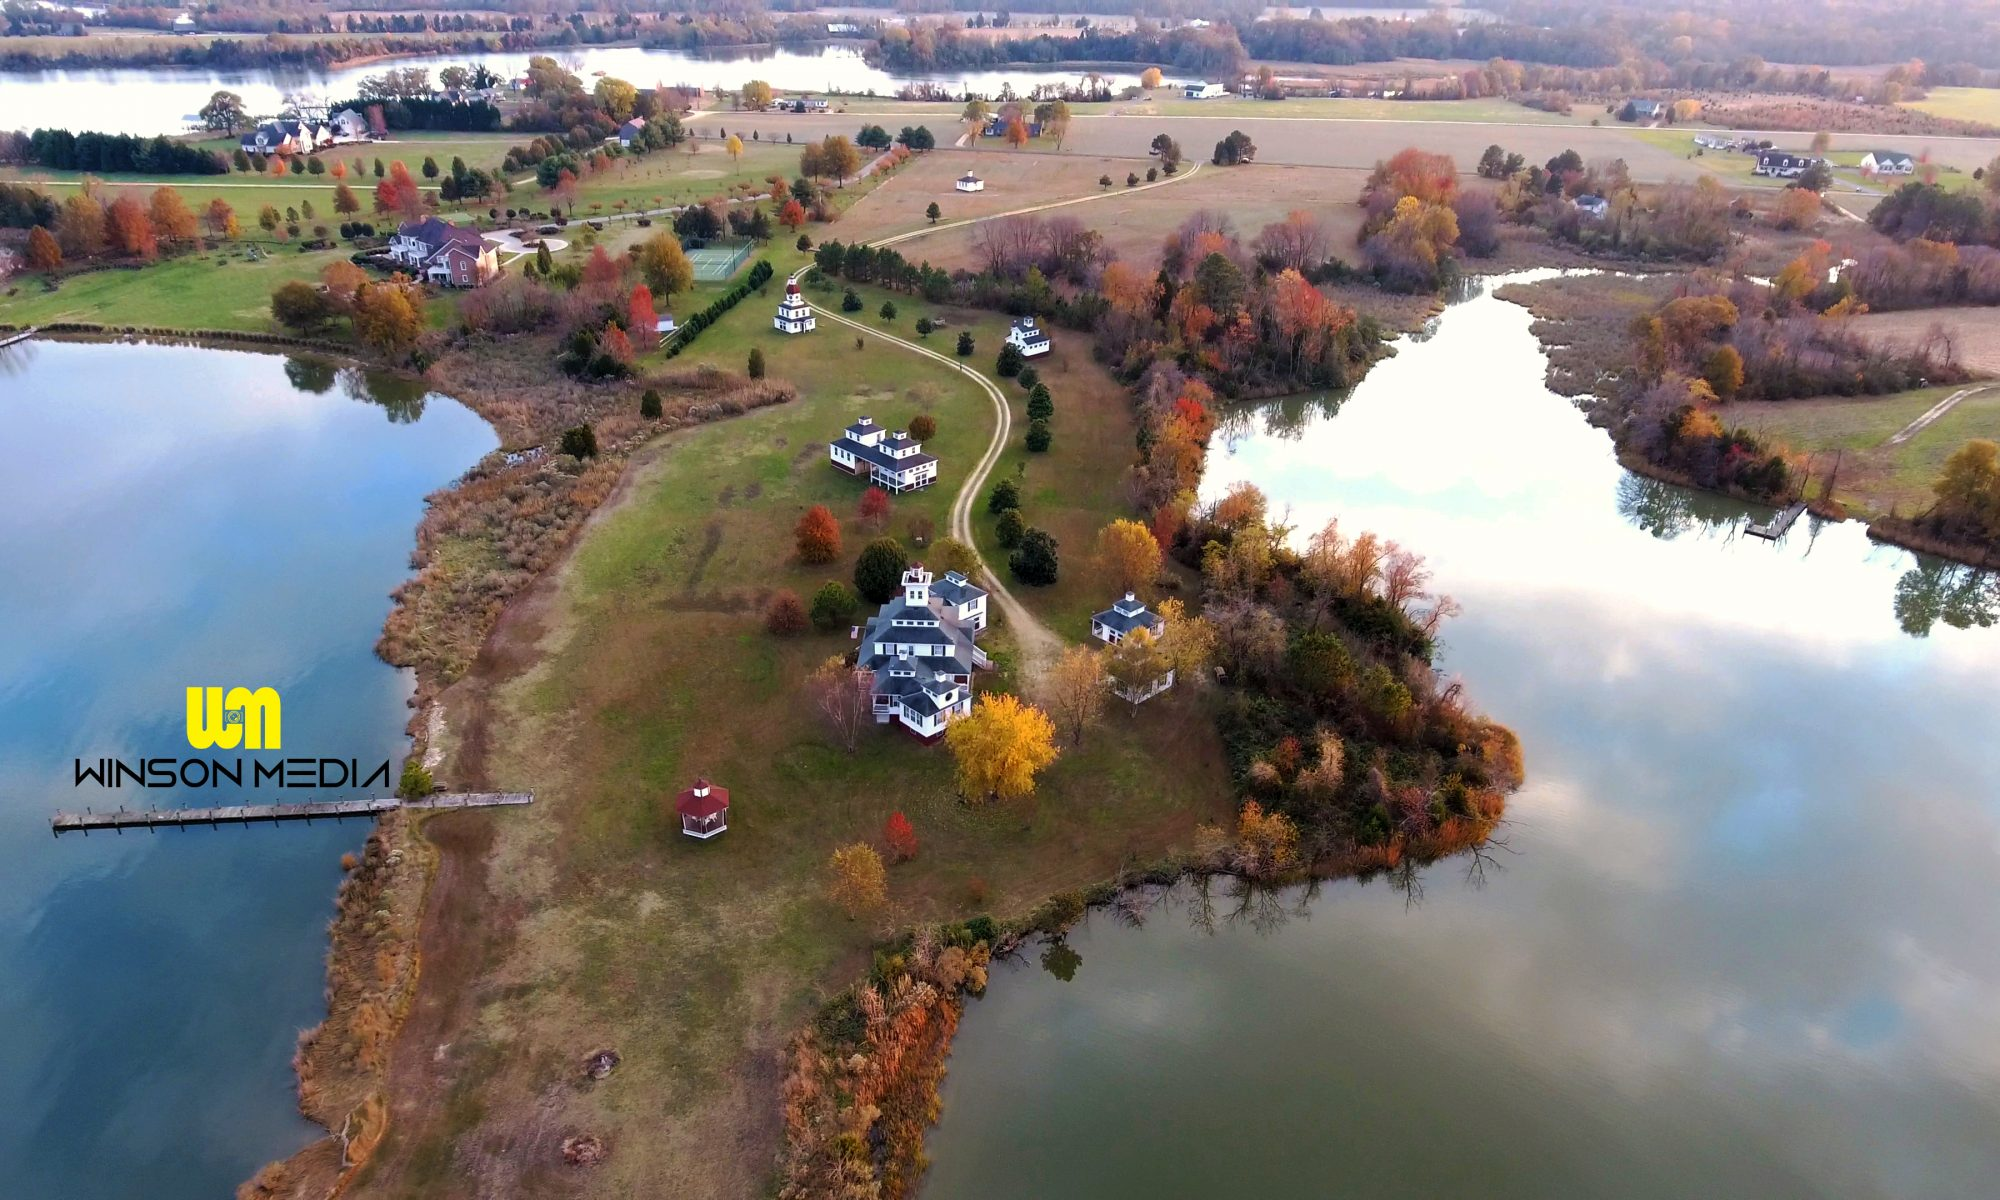 Winson Media FAA Certified Drone Aerial UAS UAV Unmanned Aerial System Vehicle Maryland Real Estate